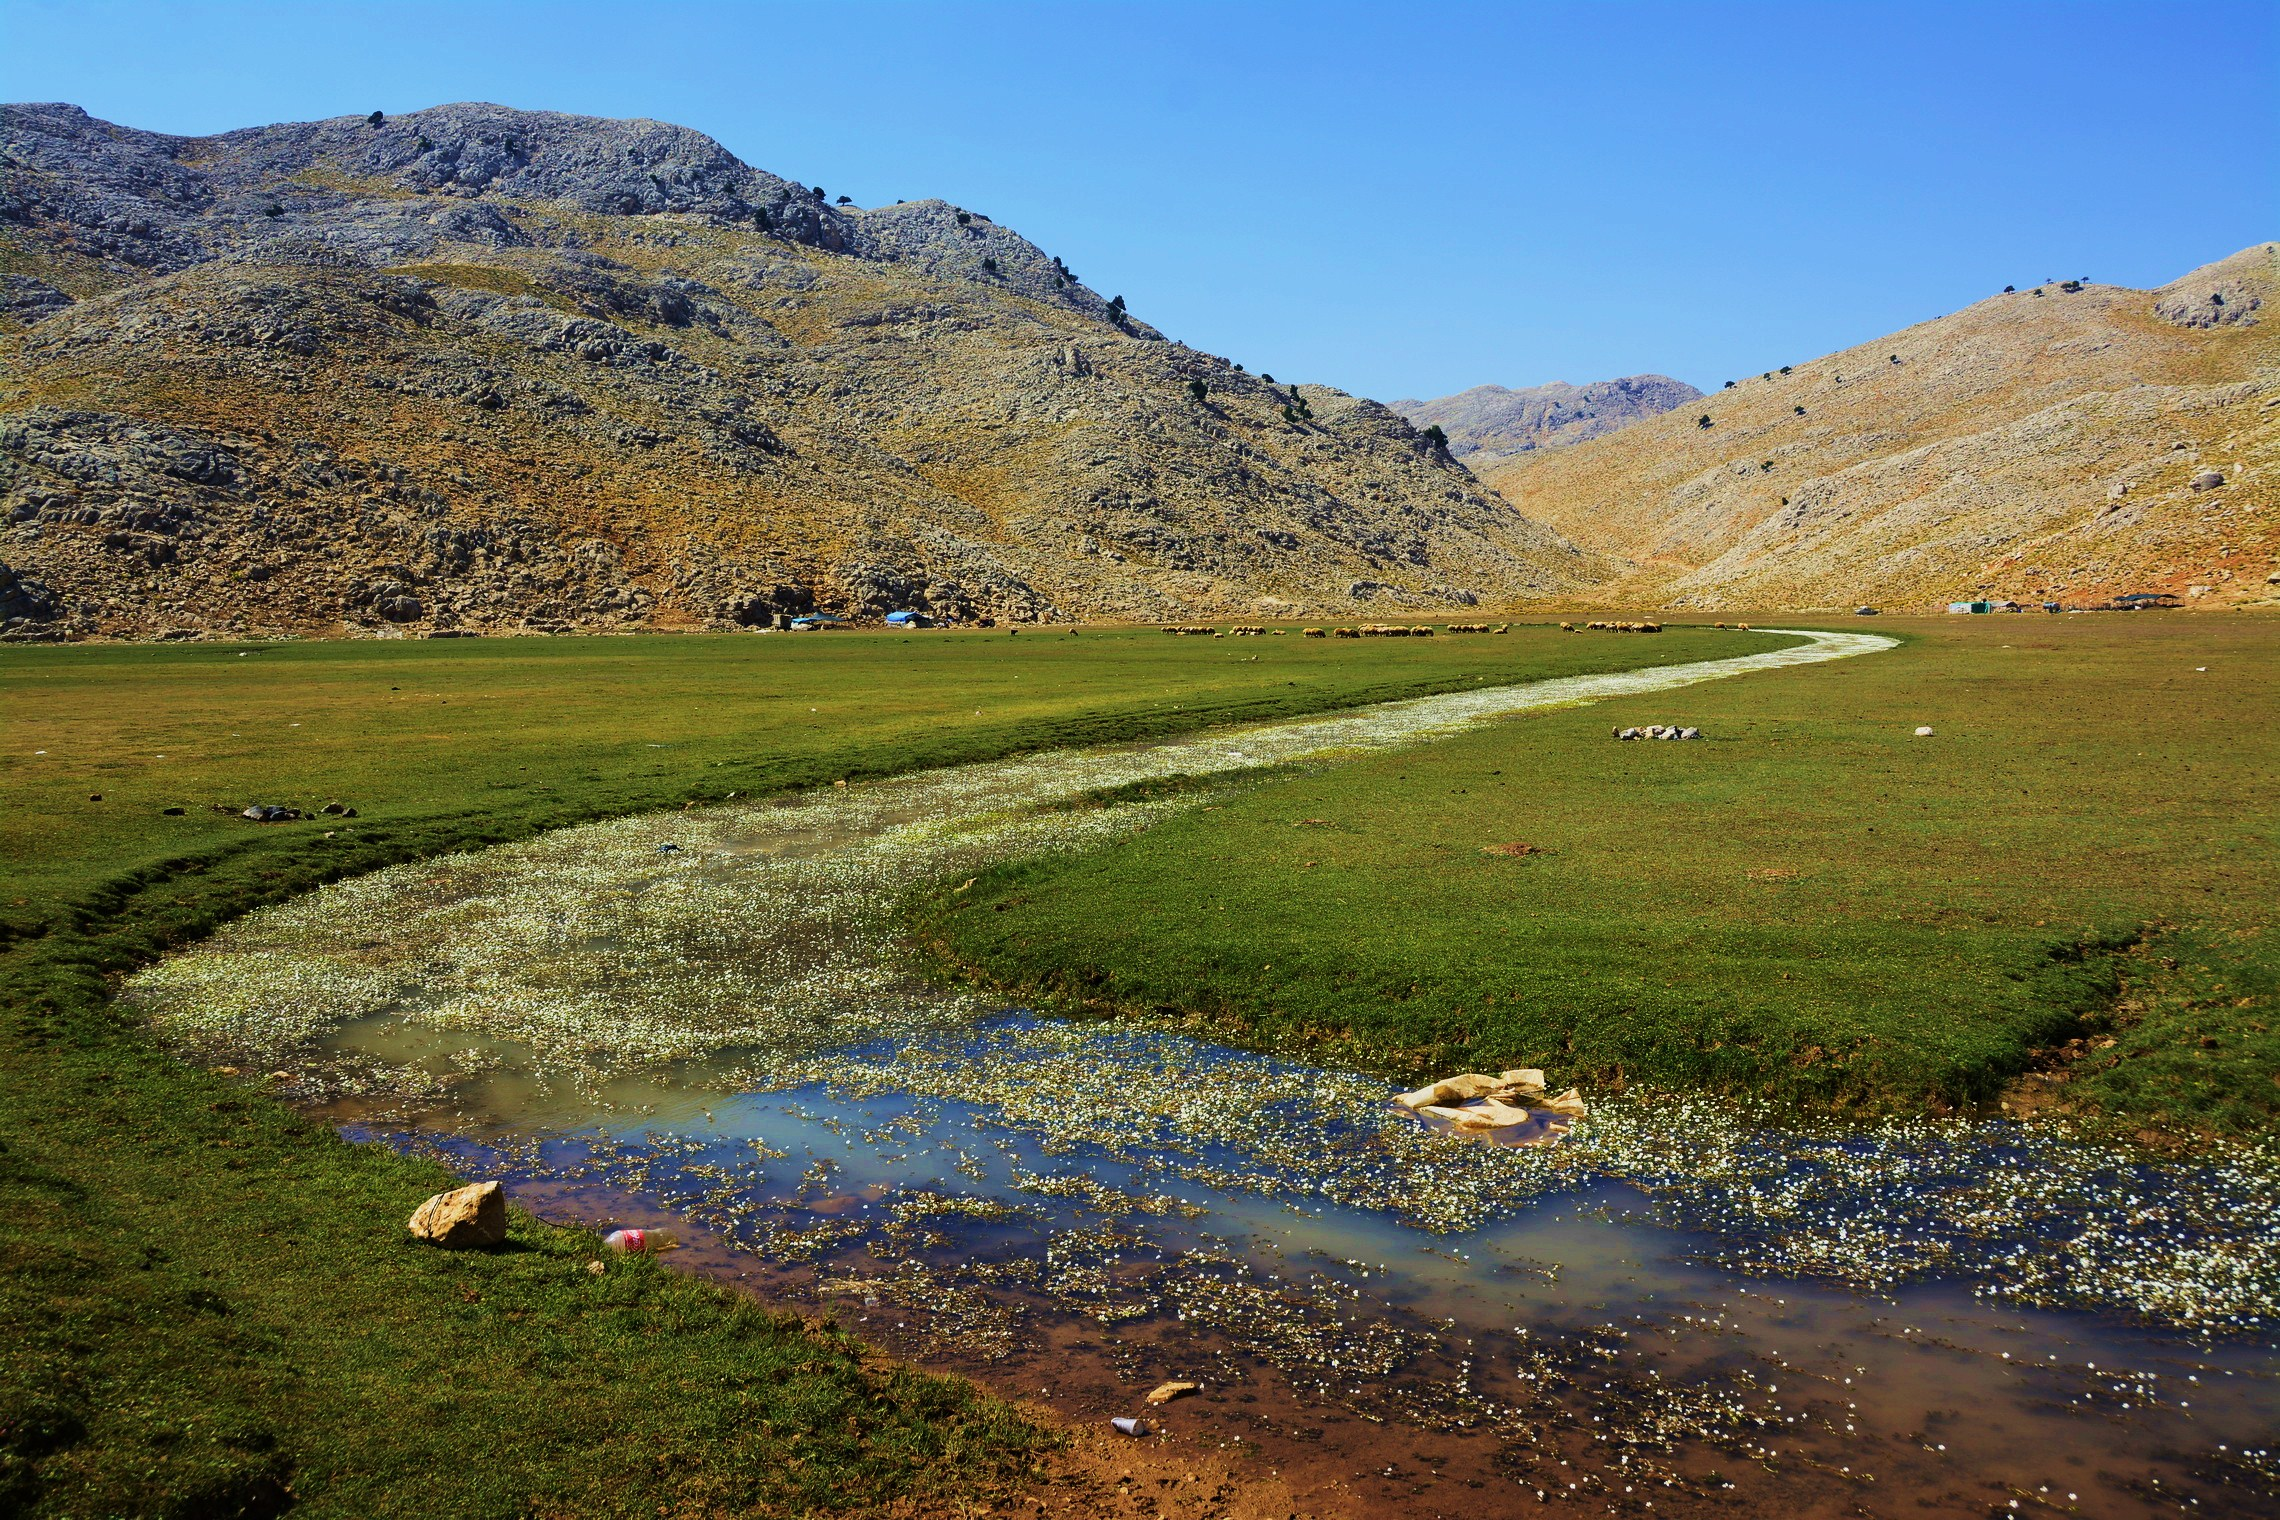 Pastures above 2000 meters covered with alpine graze suitable to feed sheep and goat herds